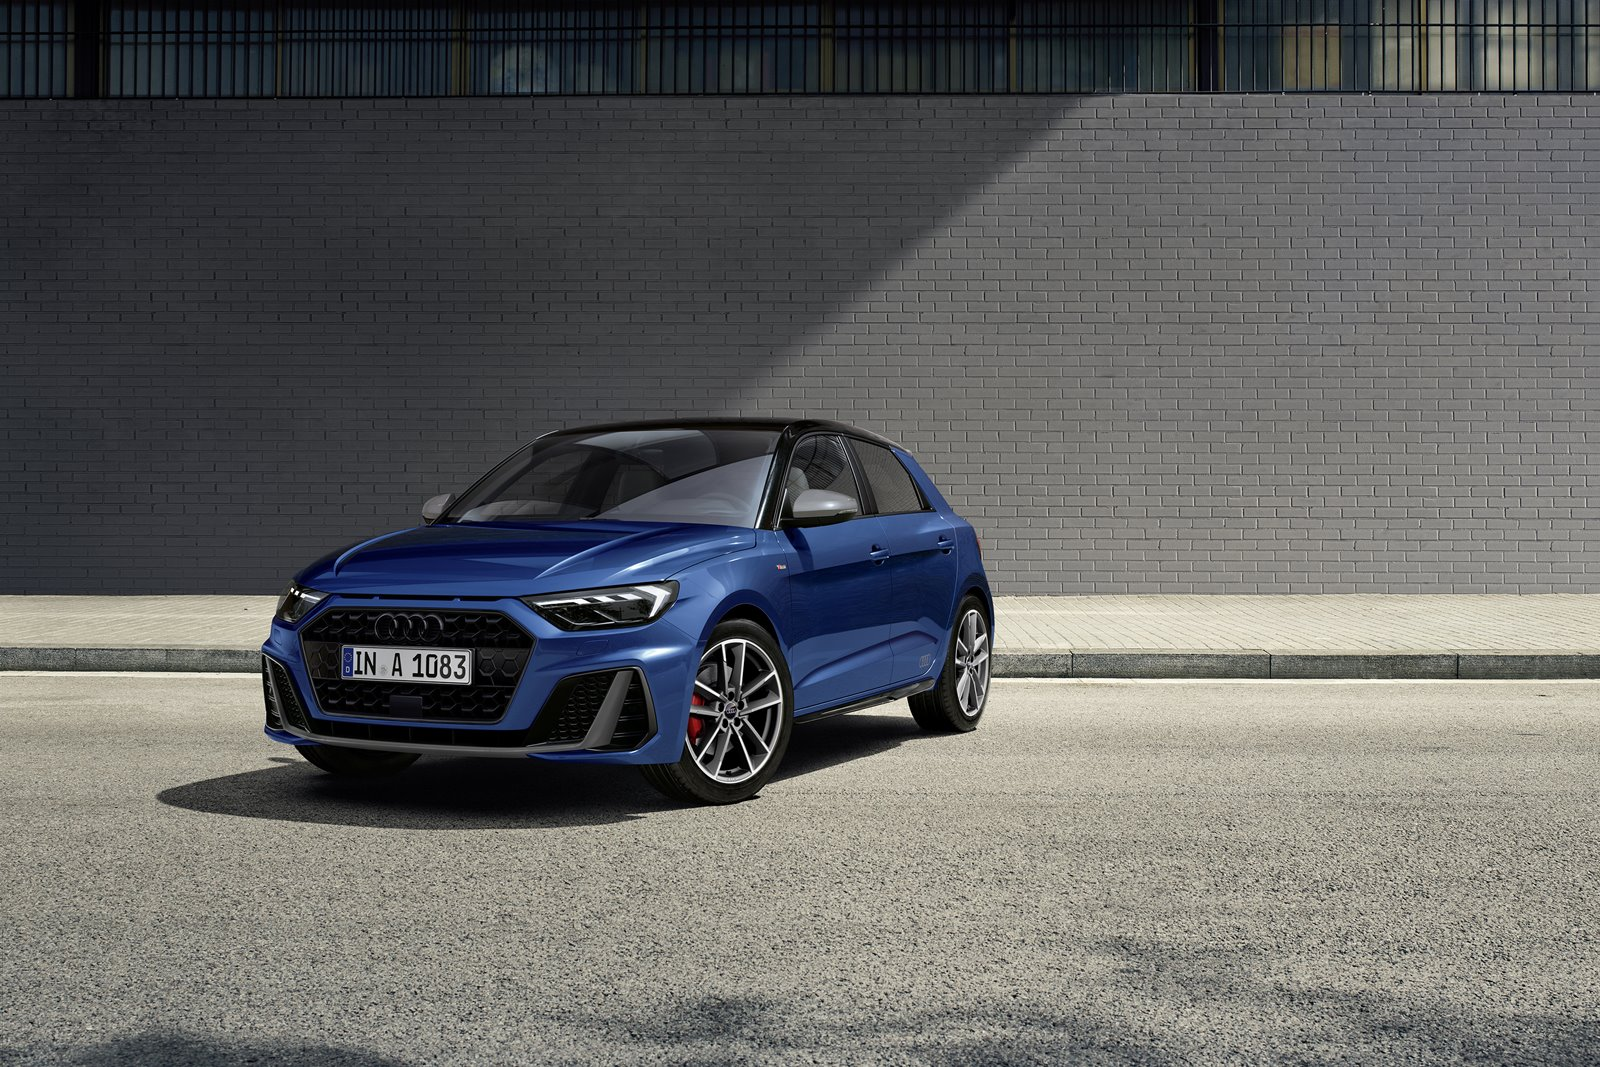 Audi A1 S line competition 2021